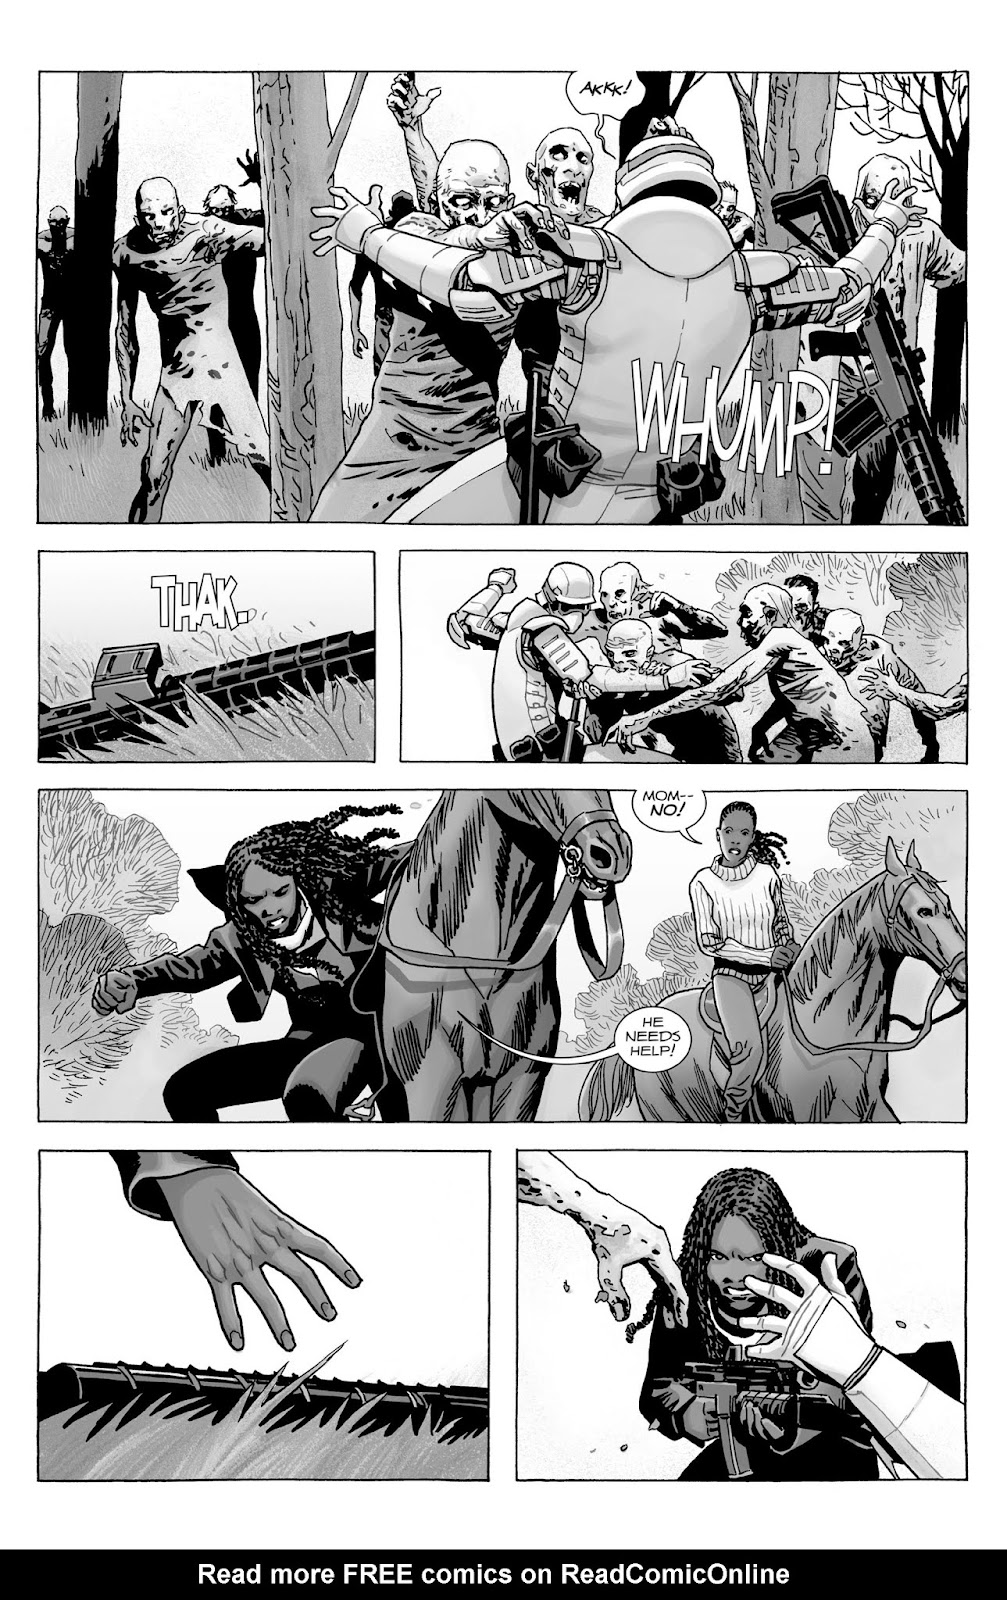 The Walking Dead Issue 183 | Viewcomic reading comics online